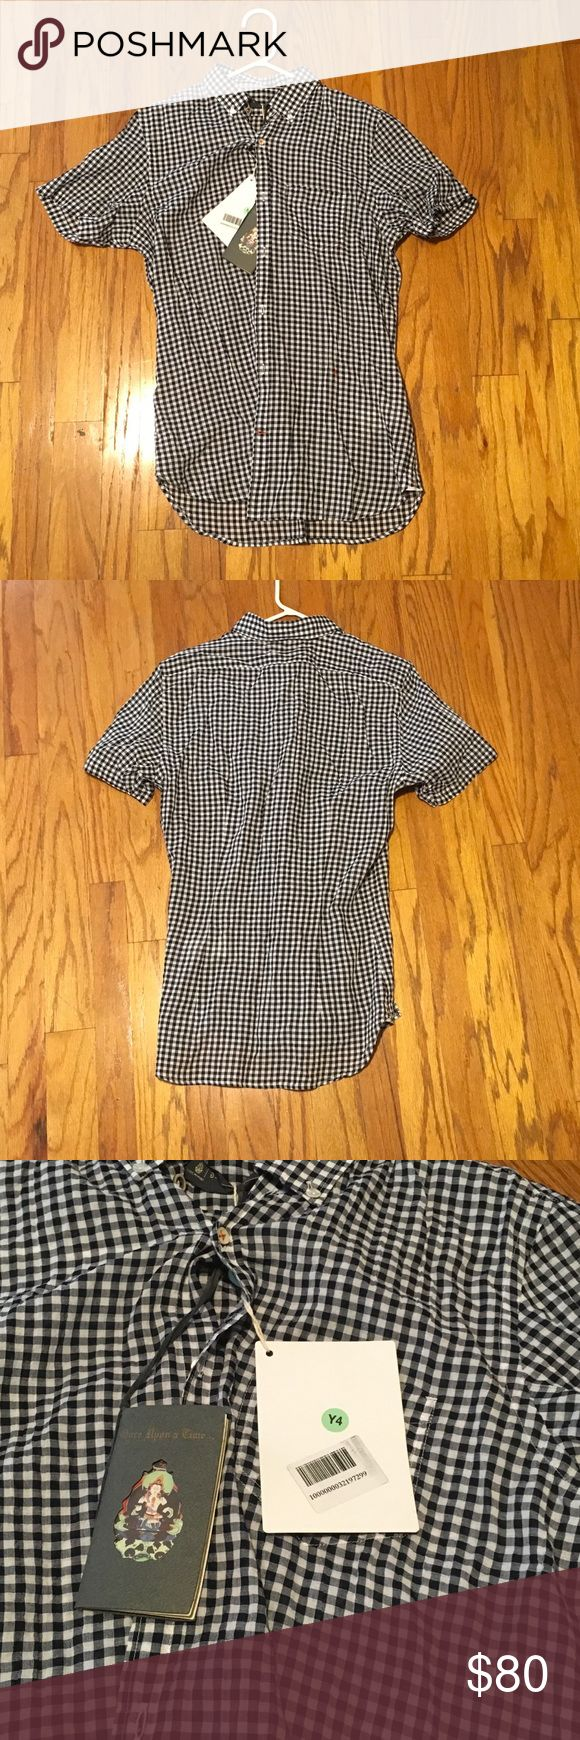 Men's plaid shirt Black and white plaid never worn. Made in Italy Dondup Shirts Casual Button Down Shirts